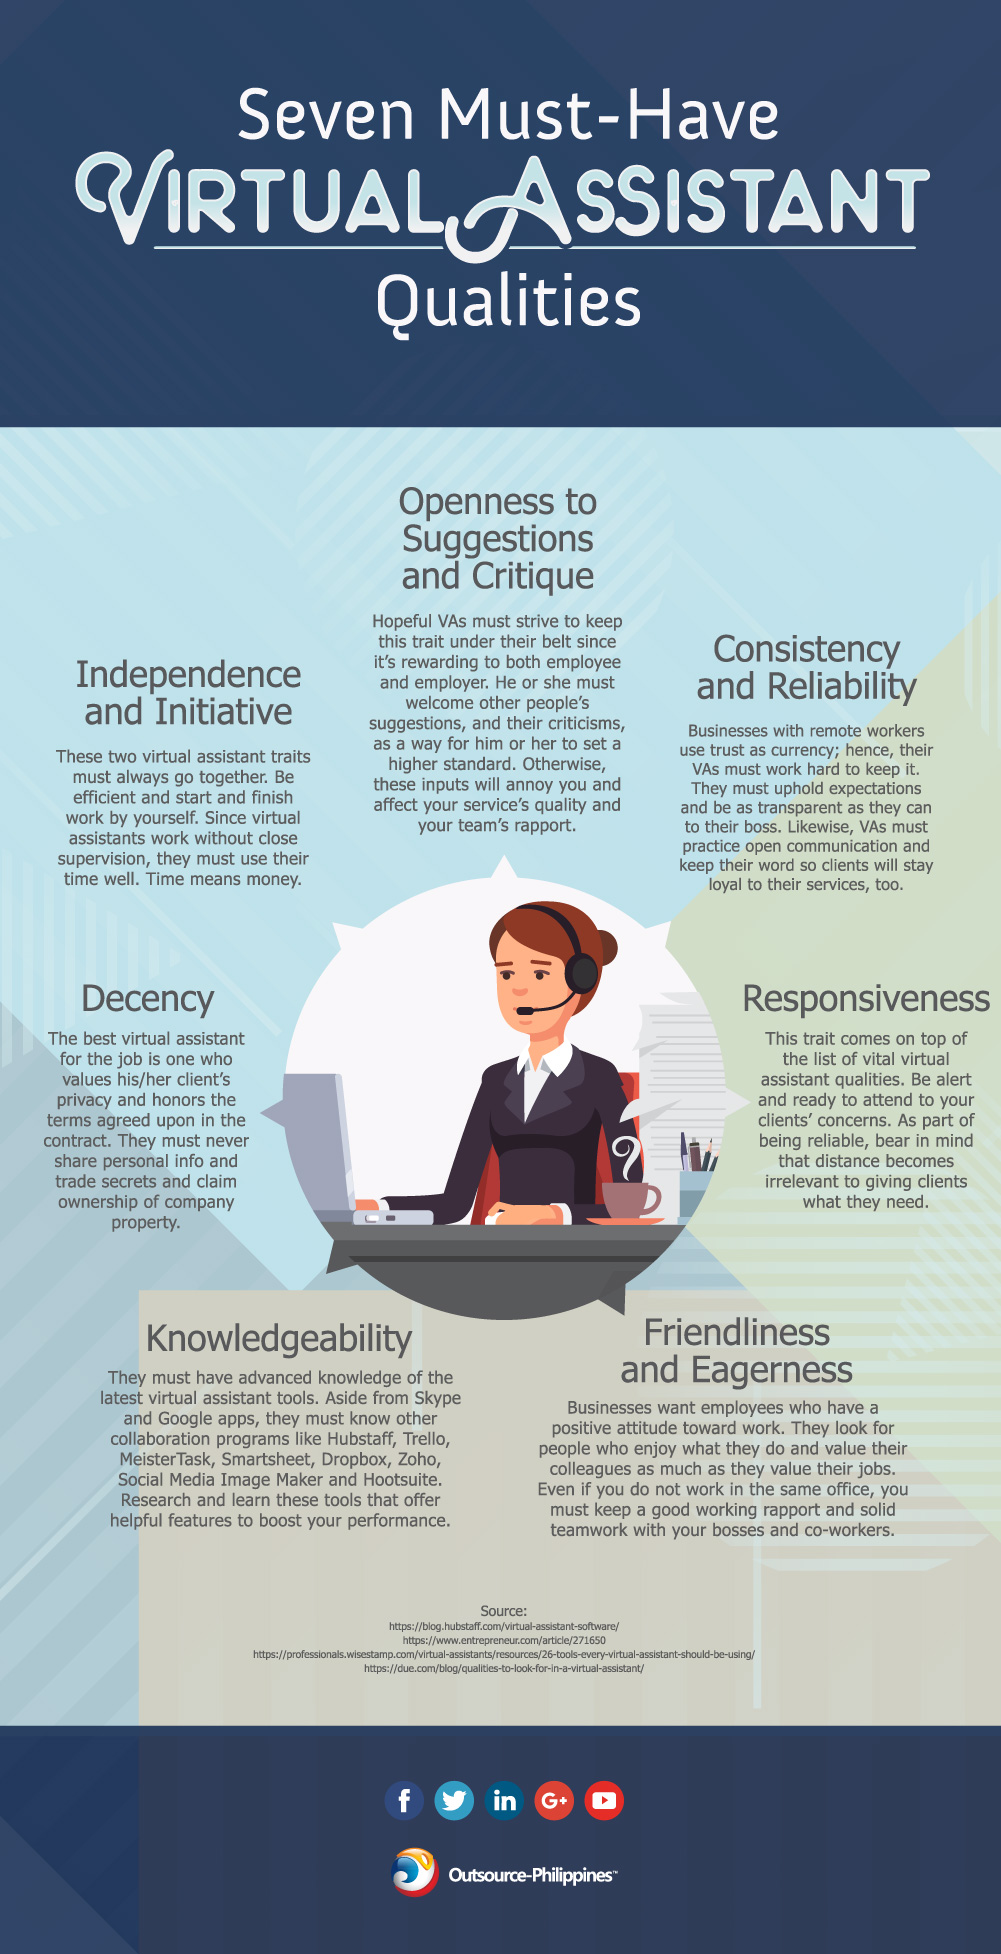 Seven Must-Have Virtual Assistant Qualities Infographic